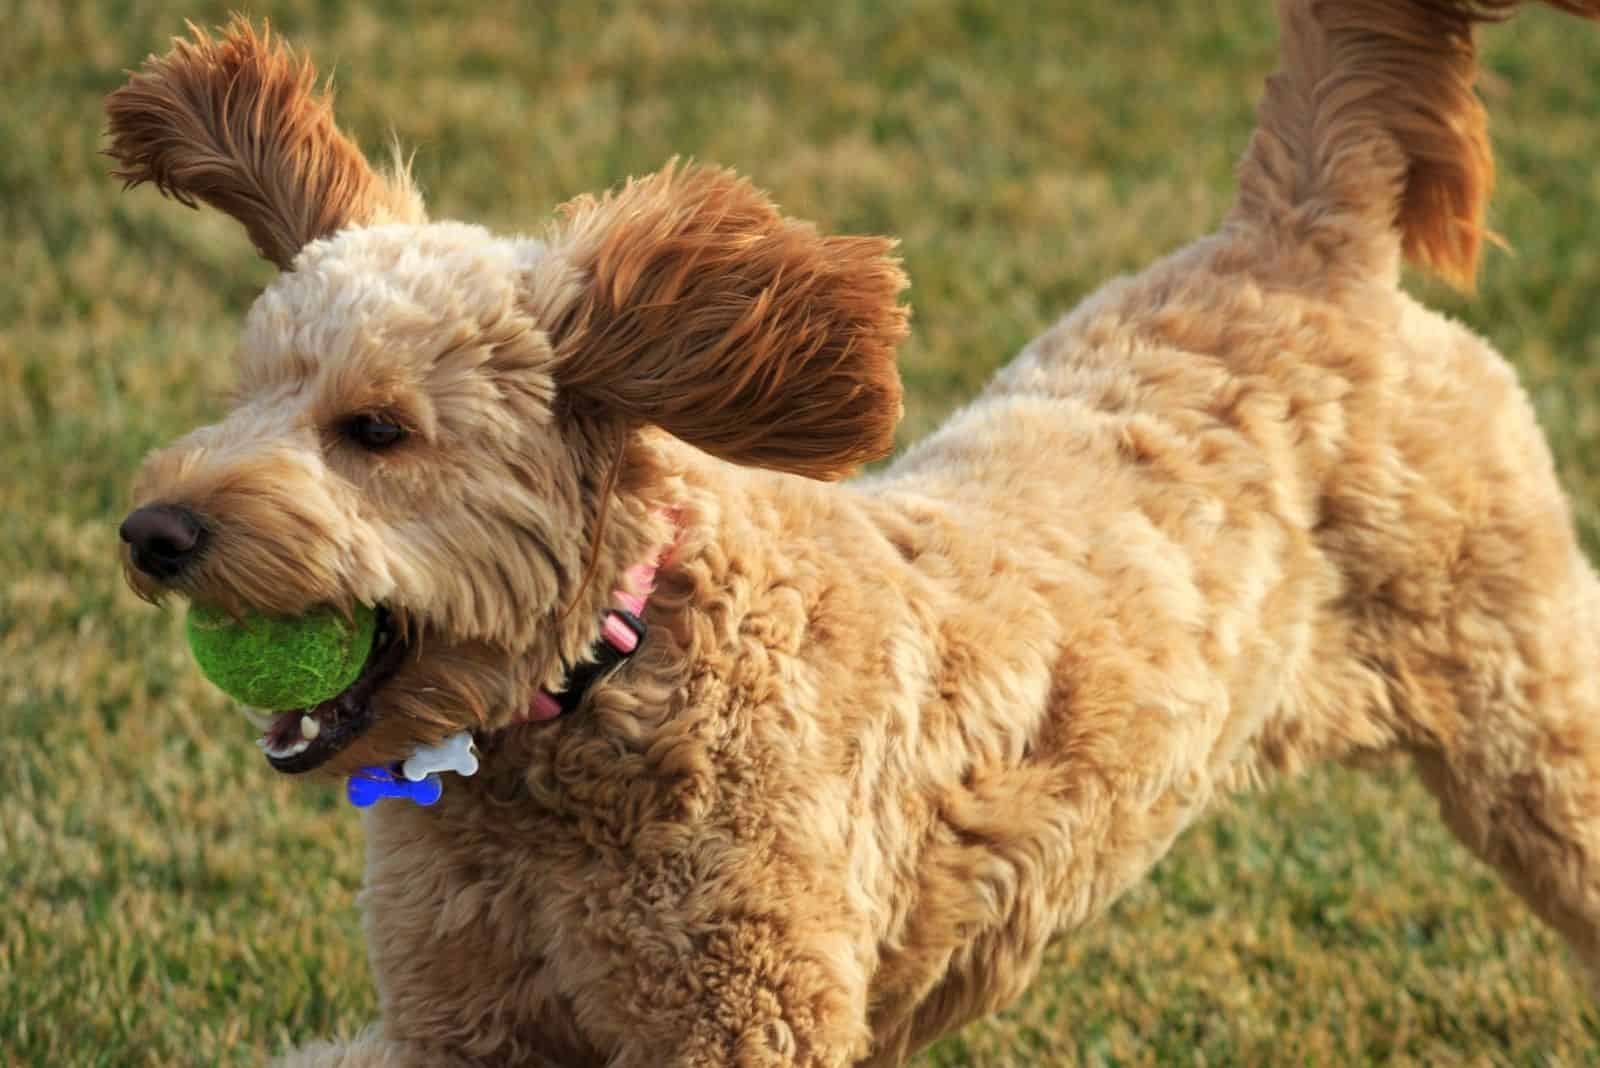 goldendoodle with ball in the mouth playing